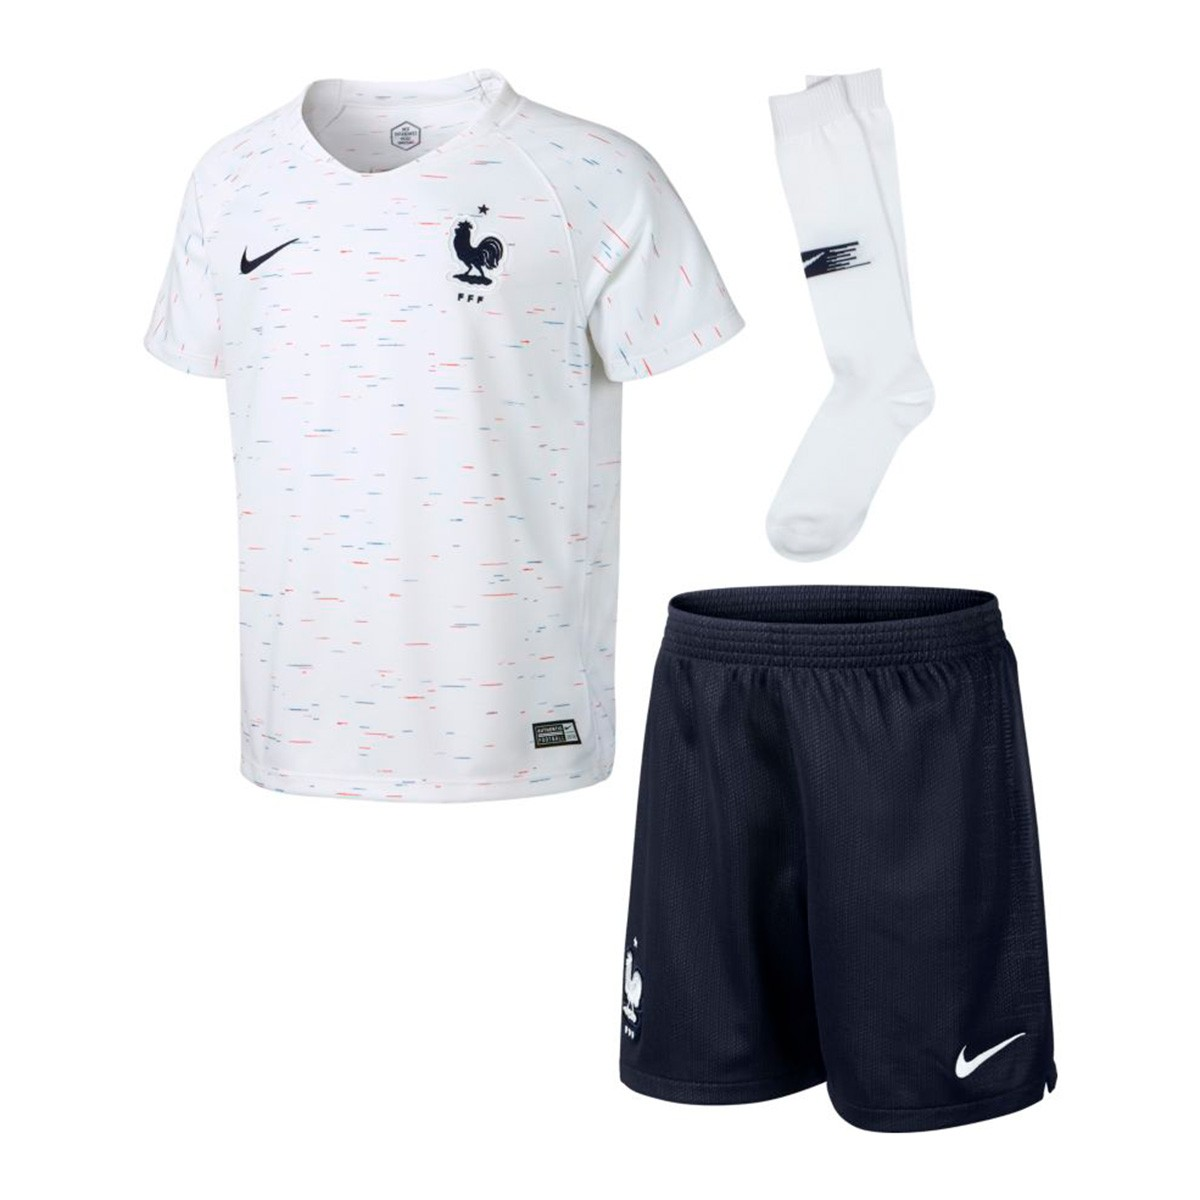 c97376464ad Nike Kids France Breathe 2018-2019 Away Kit. White-Obsidian ...